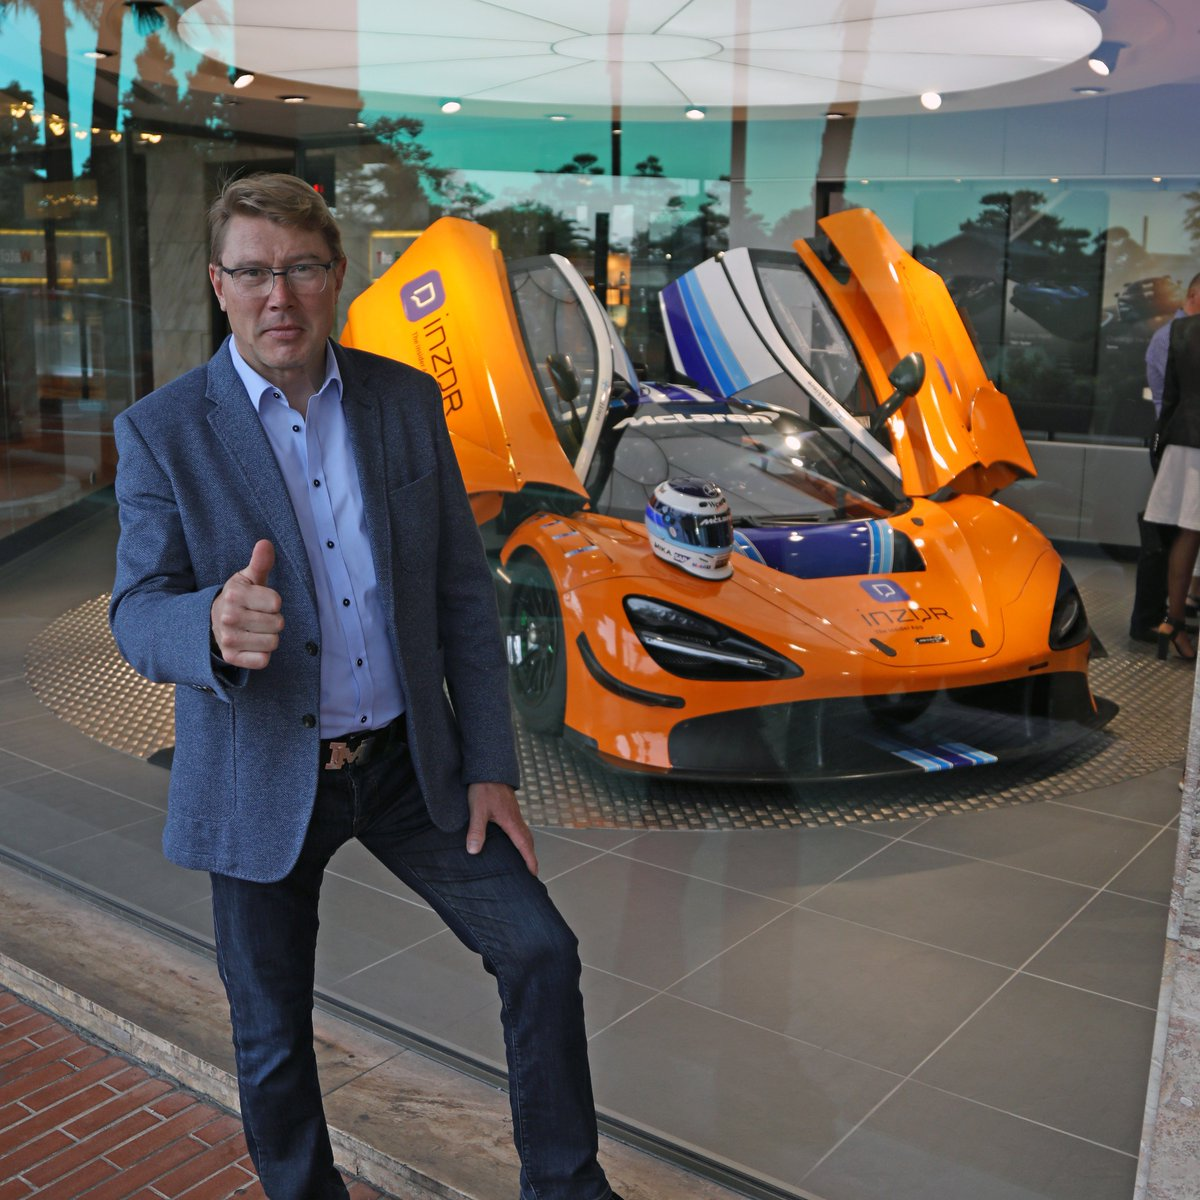 A Papaya & @F1MikaHakkinen combo. 😍🧡🇫🇮  Mika Häkkinen showing off a special version of the 720S GT3 at McLaren Monaco ahead of Sunday's #MonacoGP. The Flying Finn will be back racing later this year at the #Suzuka10H.